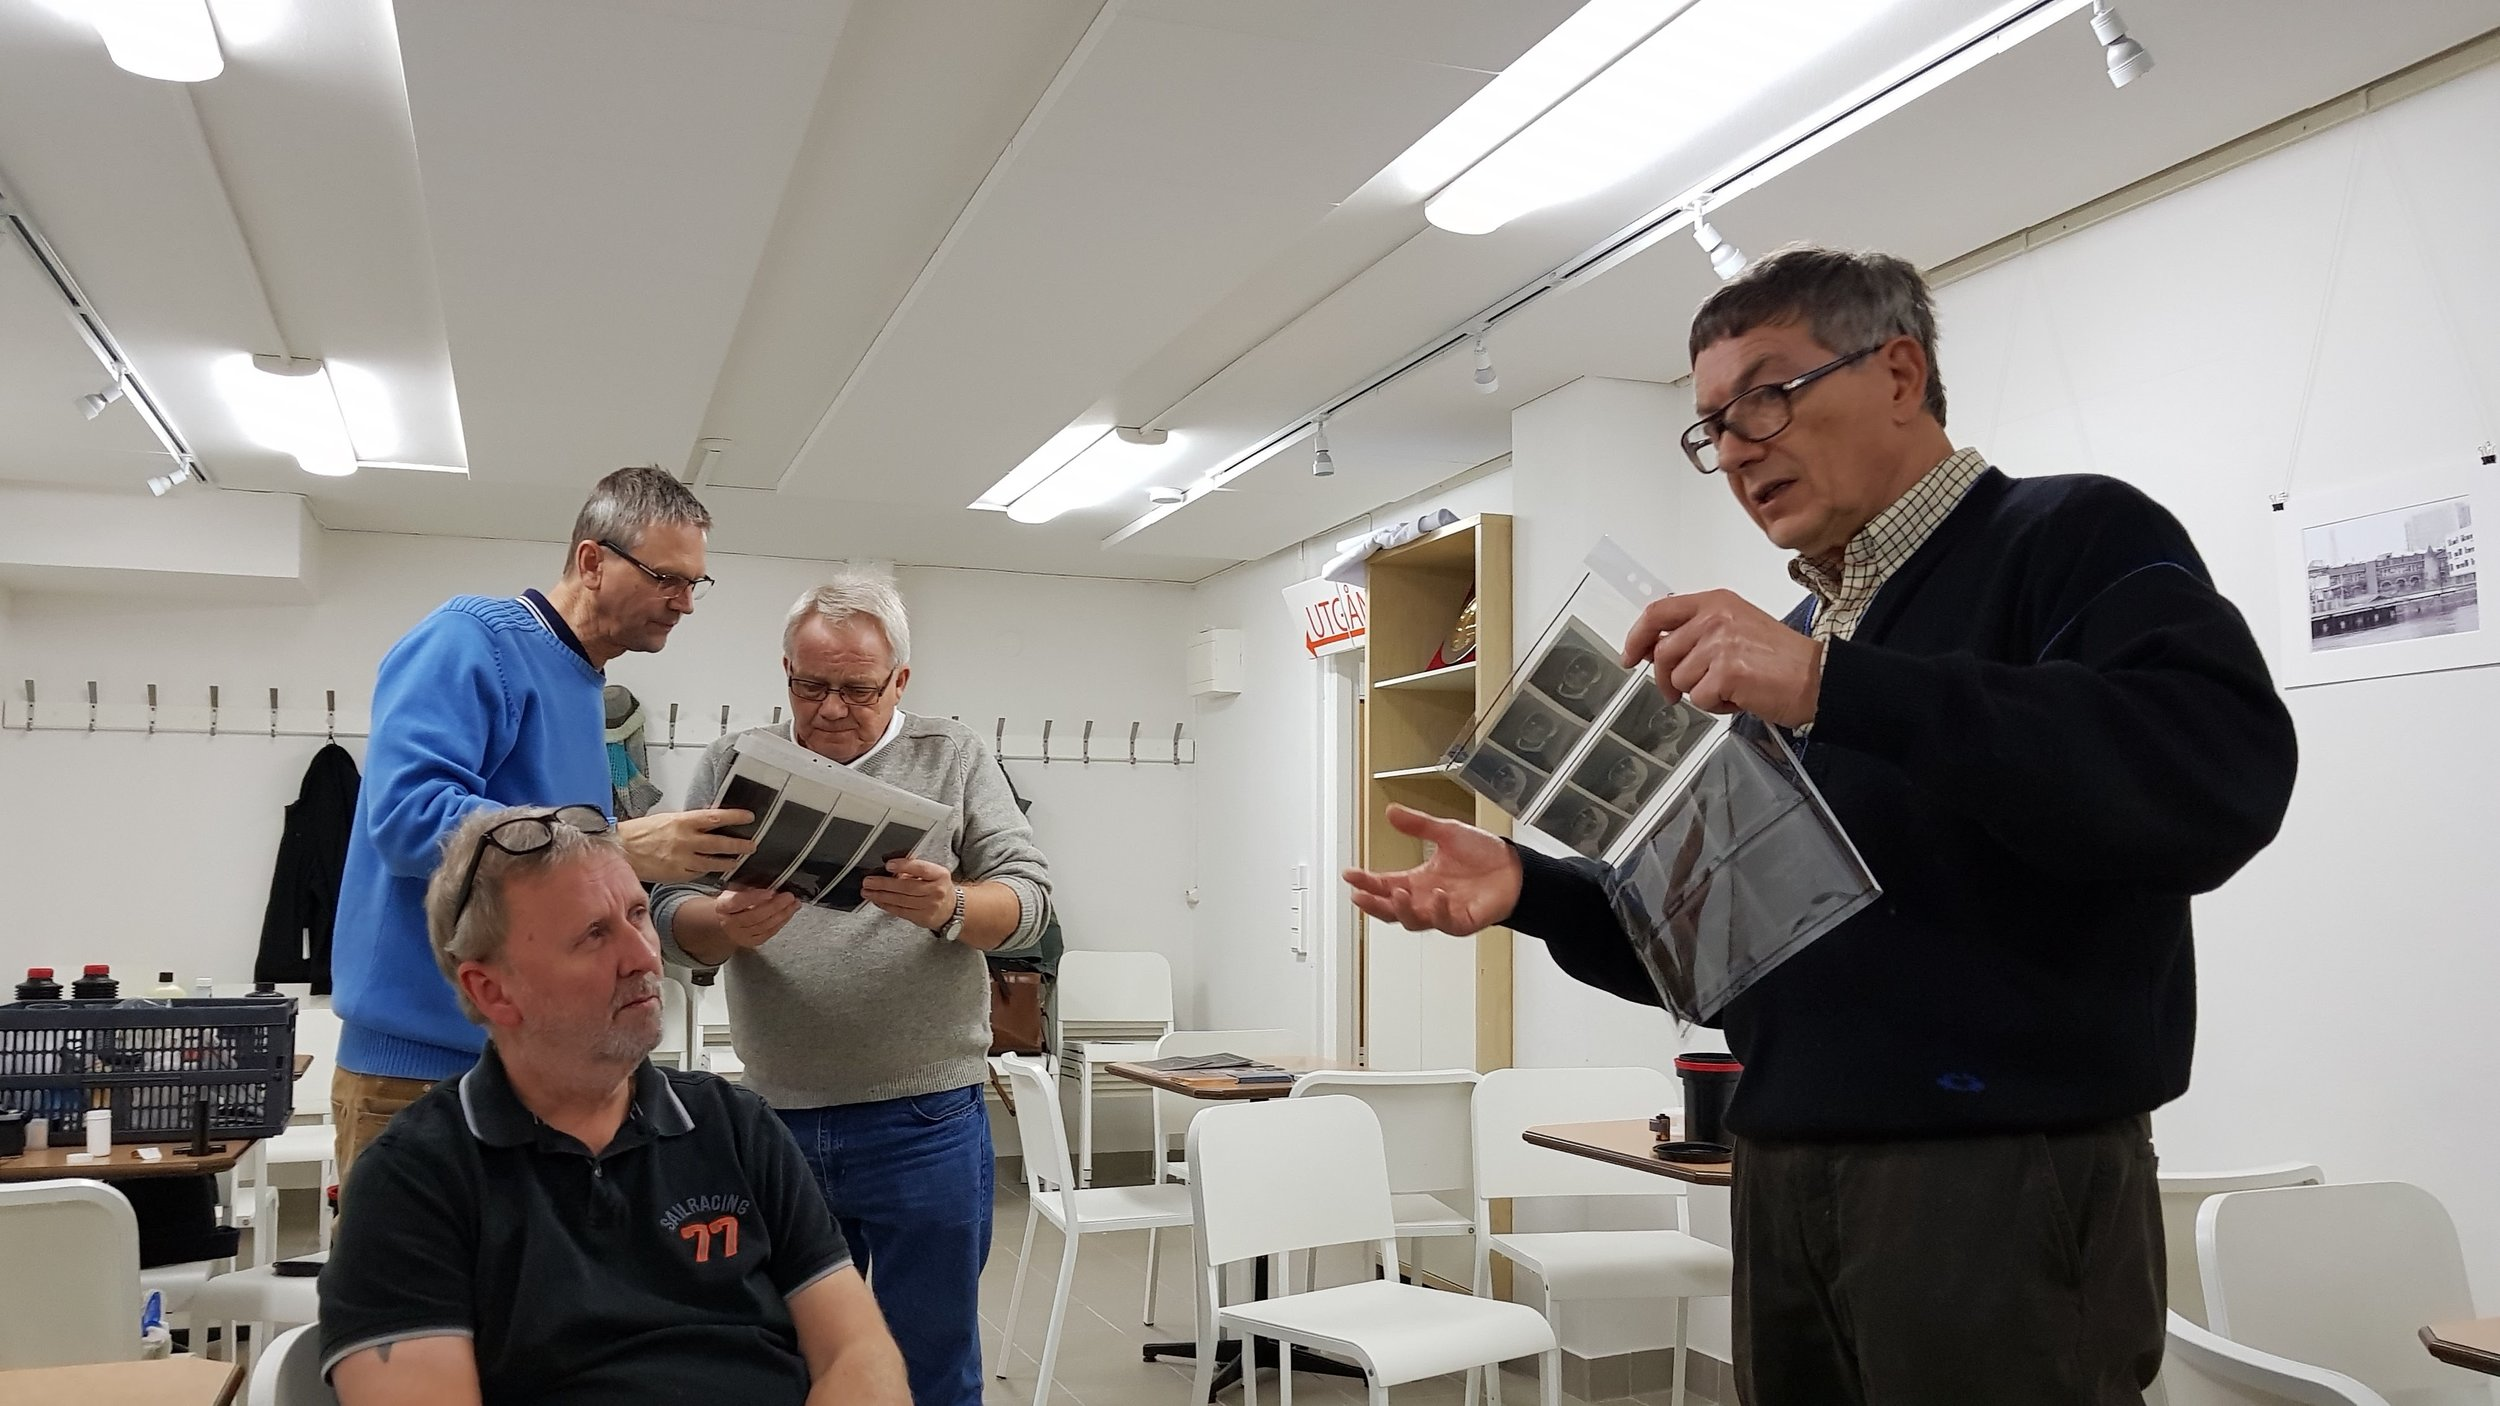 Kenneth sharing some negatives with Mikael while Ulf and Kjell studies some contact sheets.